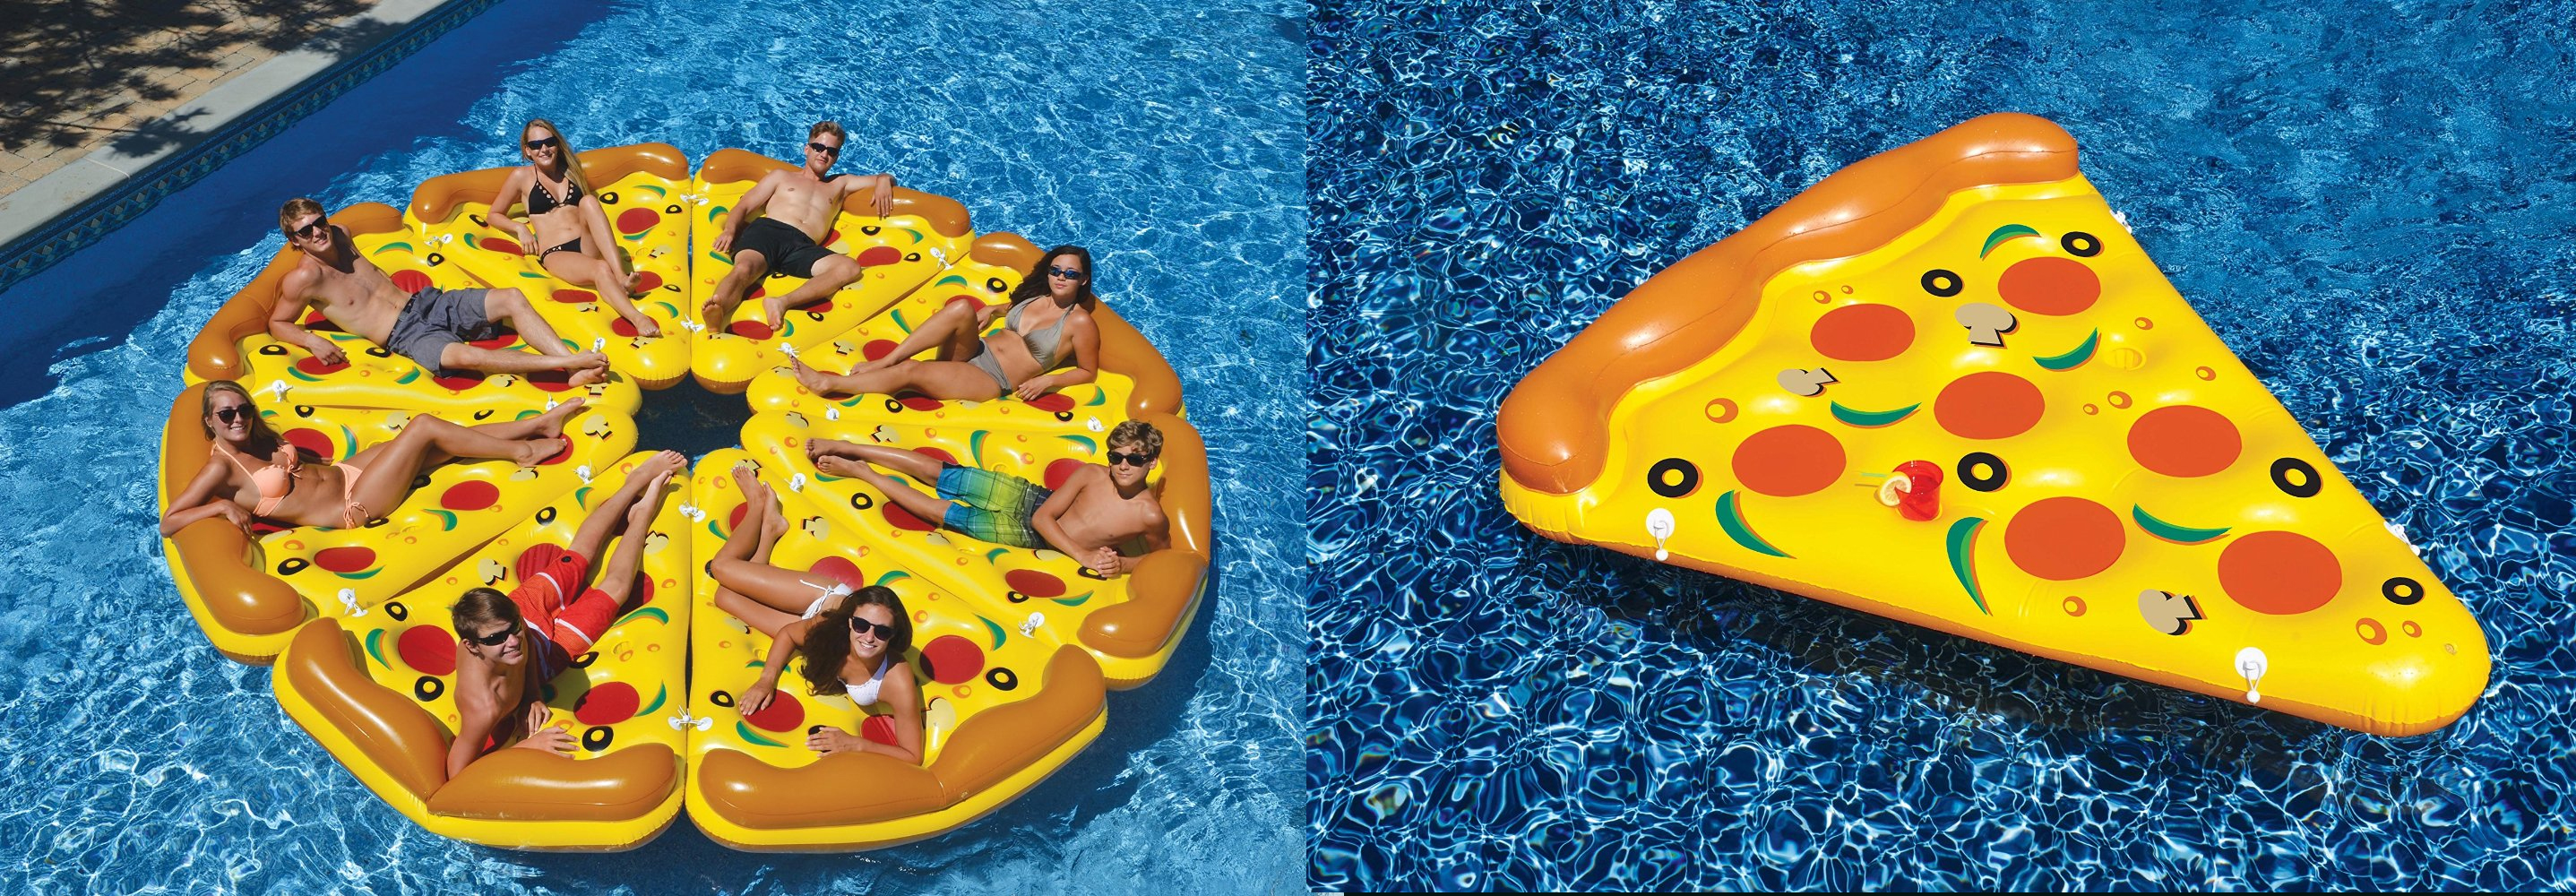 cool Pool Floats Giant Inflatable Pizza Slice